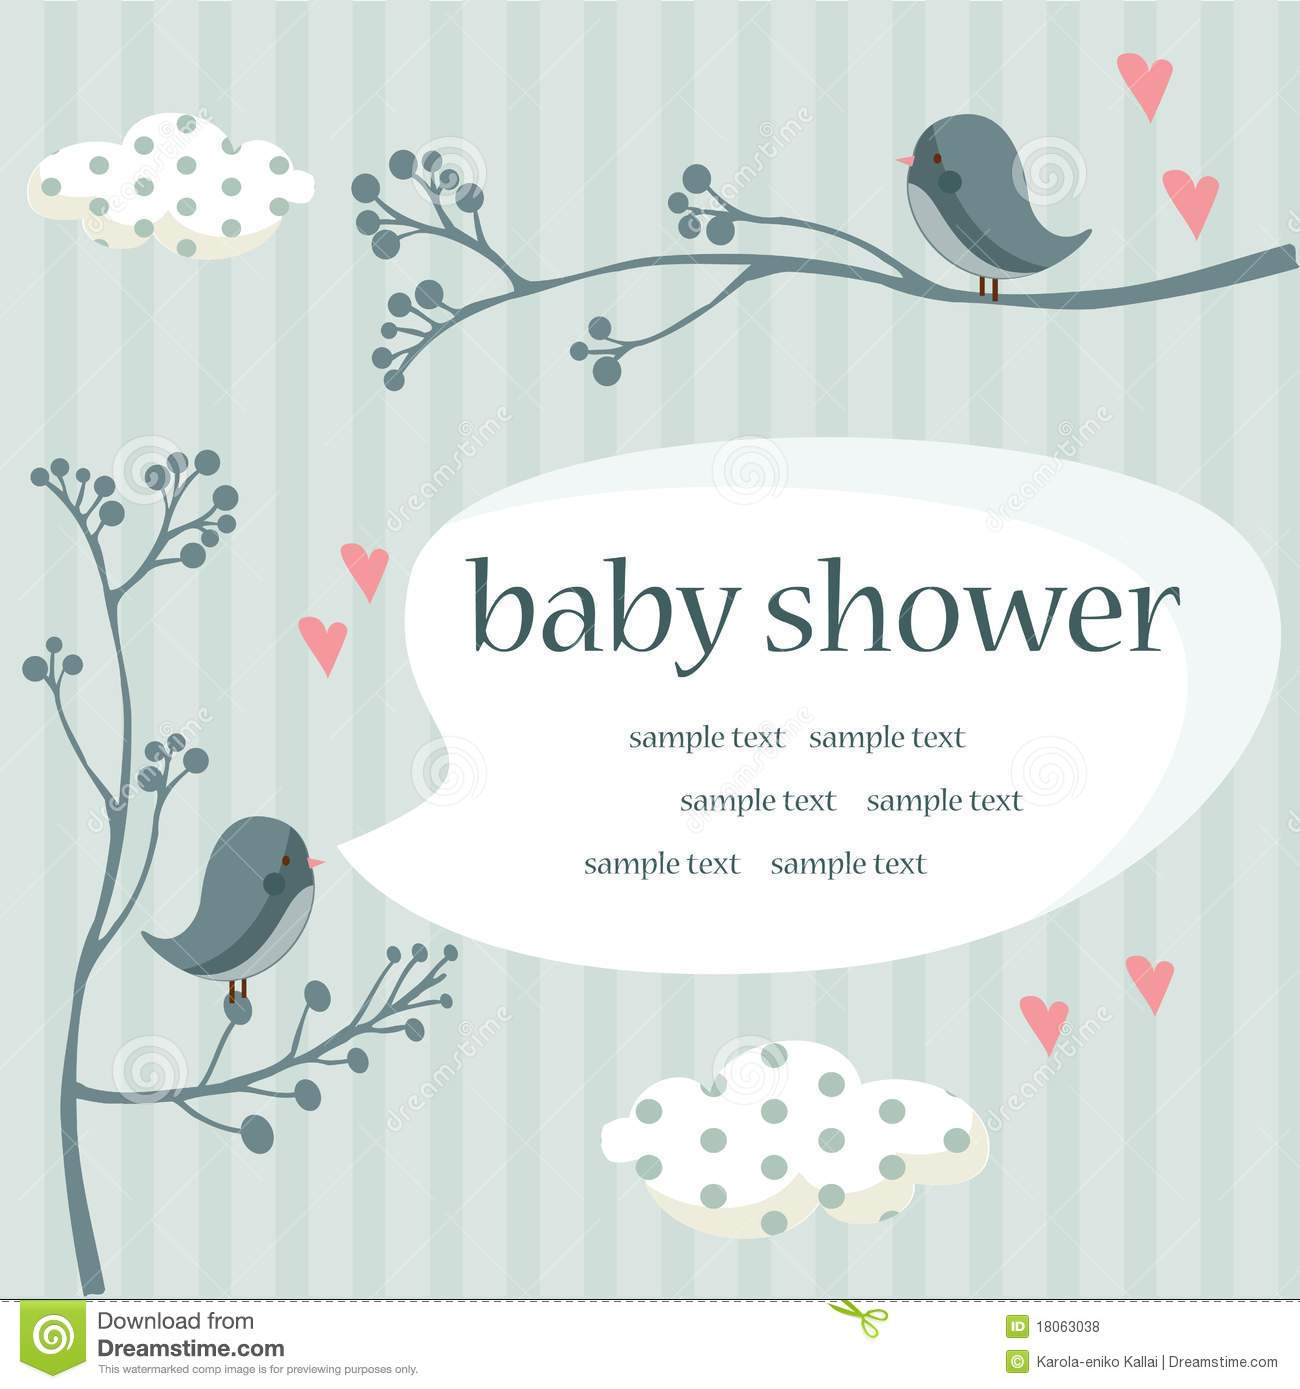 baby boy shower royalty free stock photos image 18063038